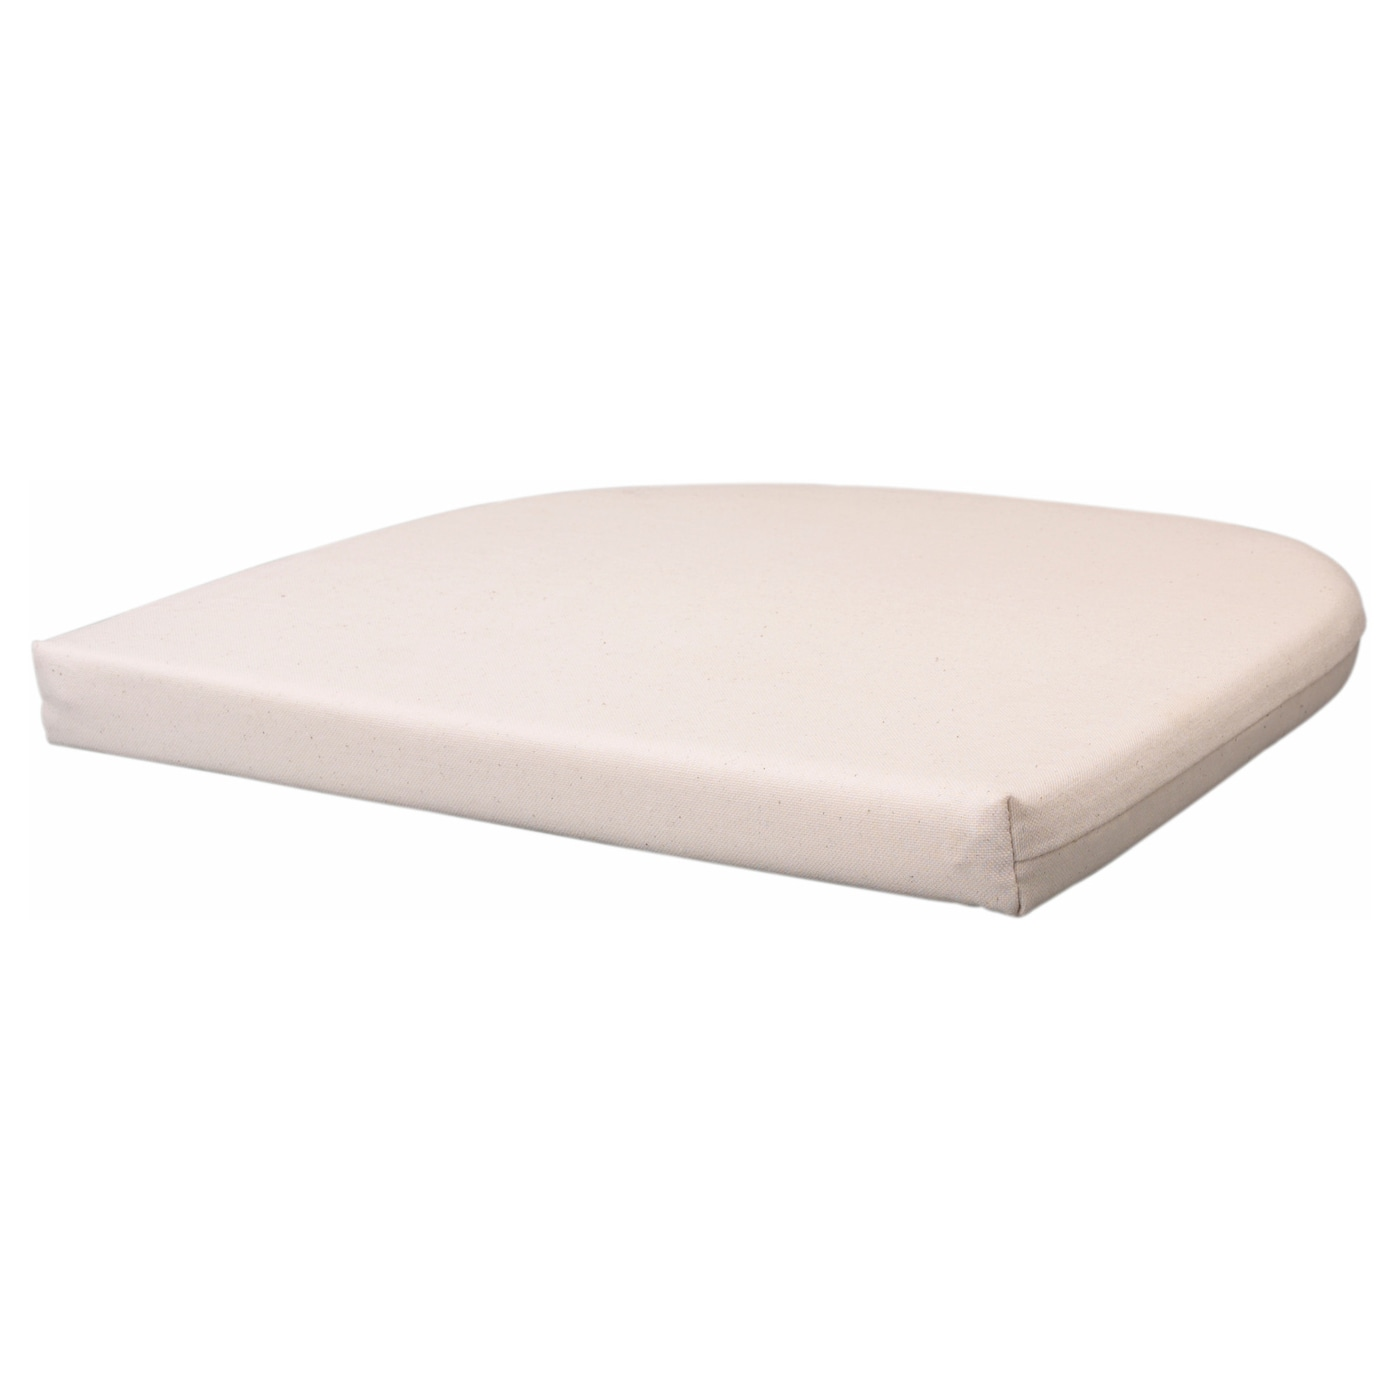 Ikea Norna Chair Pad The Cushion Can Be Turned Over And Therefore Has Two Sides For